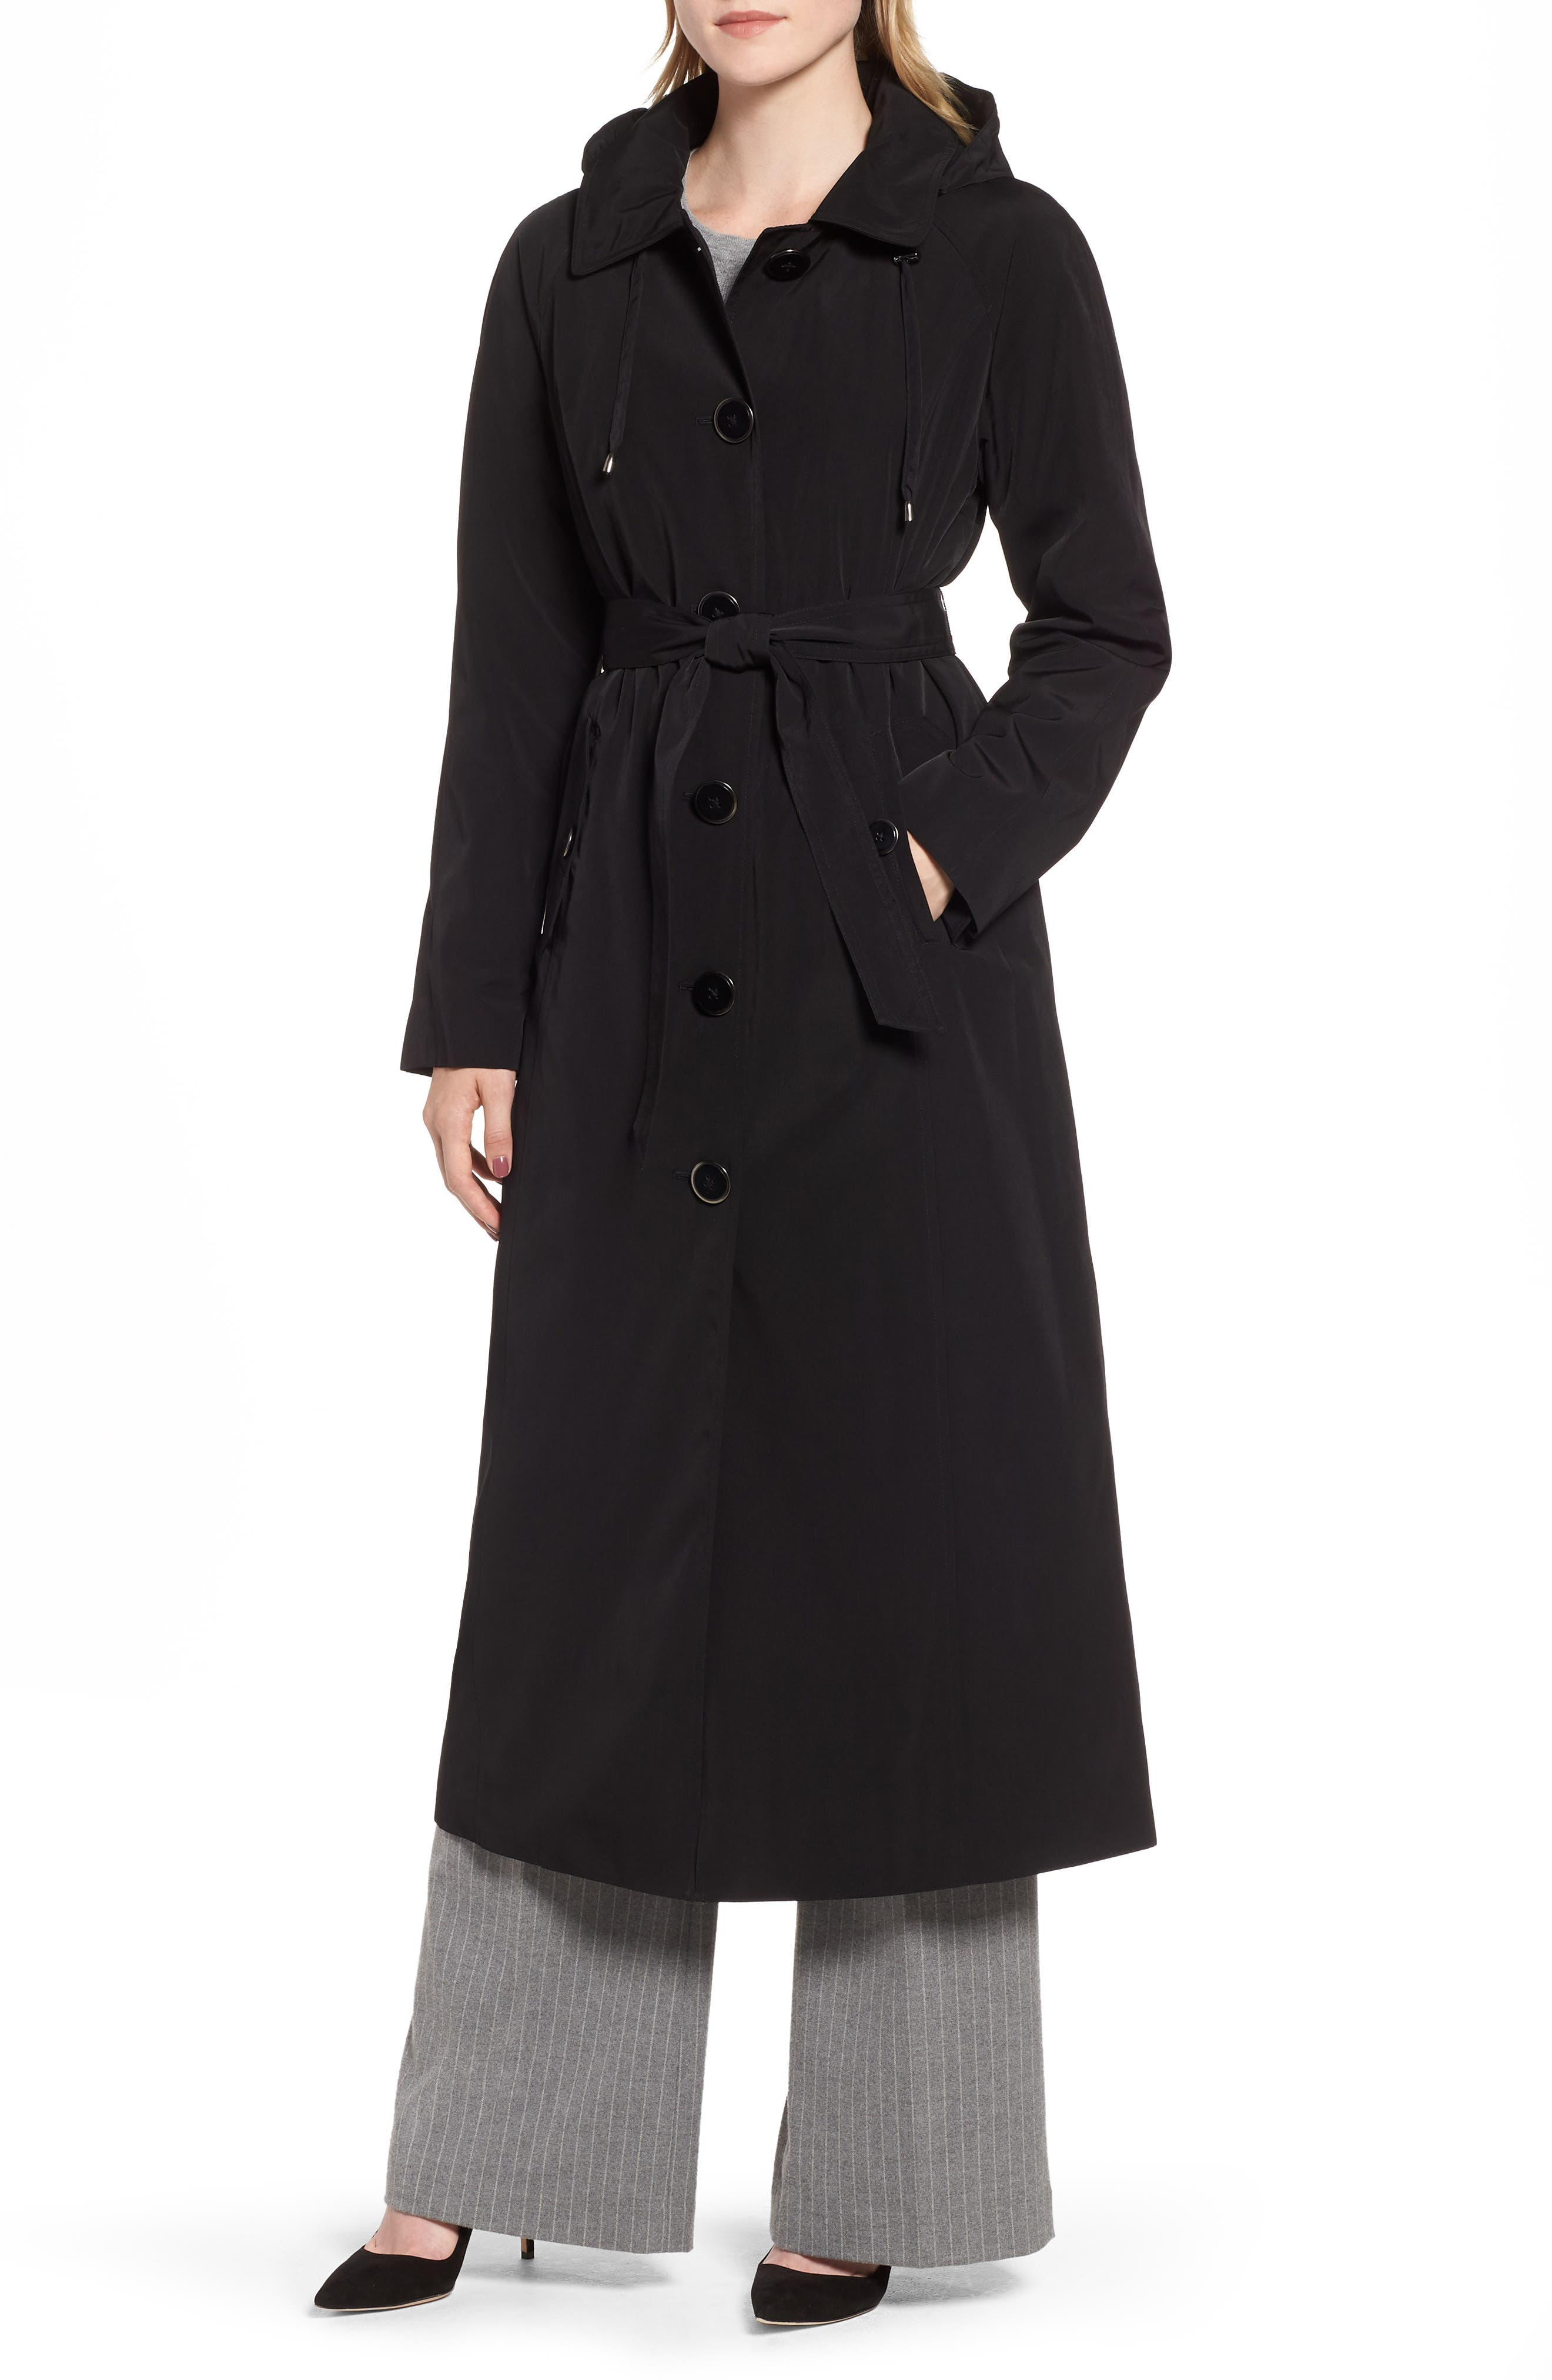 19ae4fc62 Women's London Fog Coats & Jackets | Nordstrom